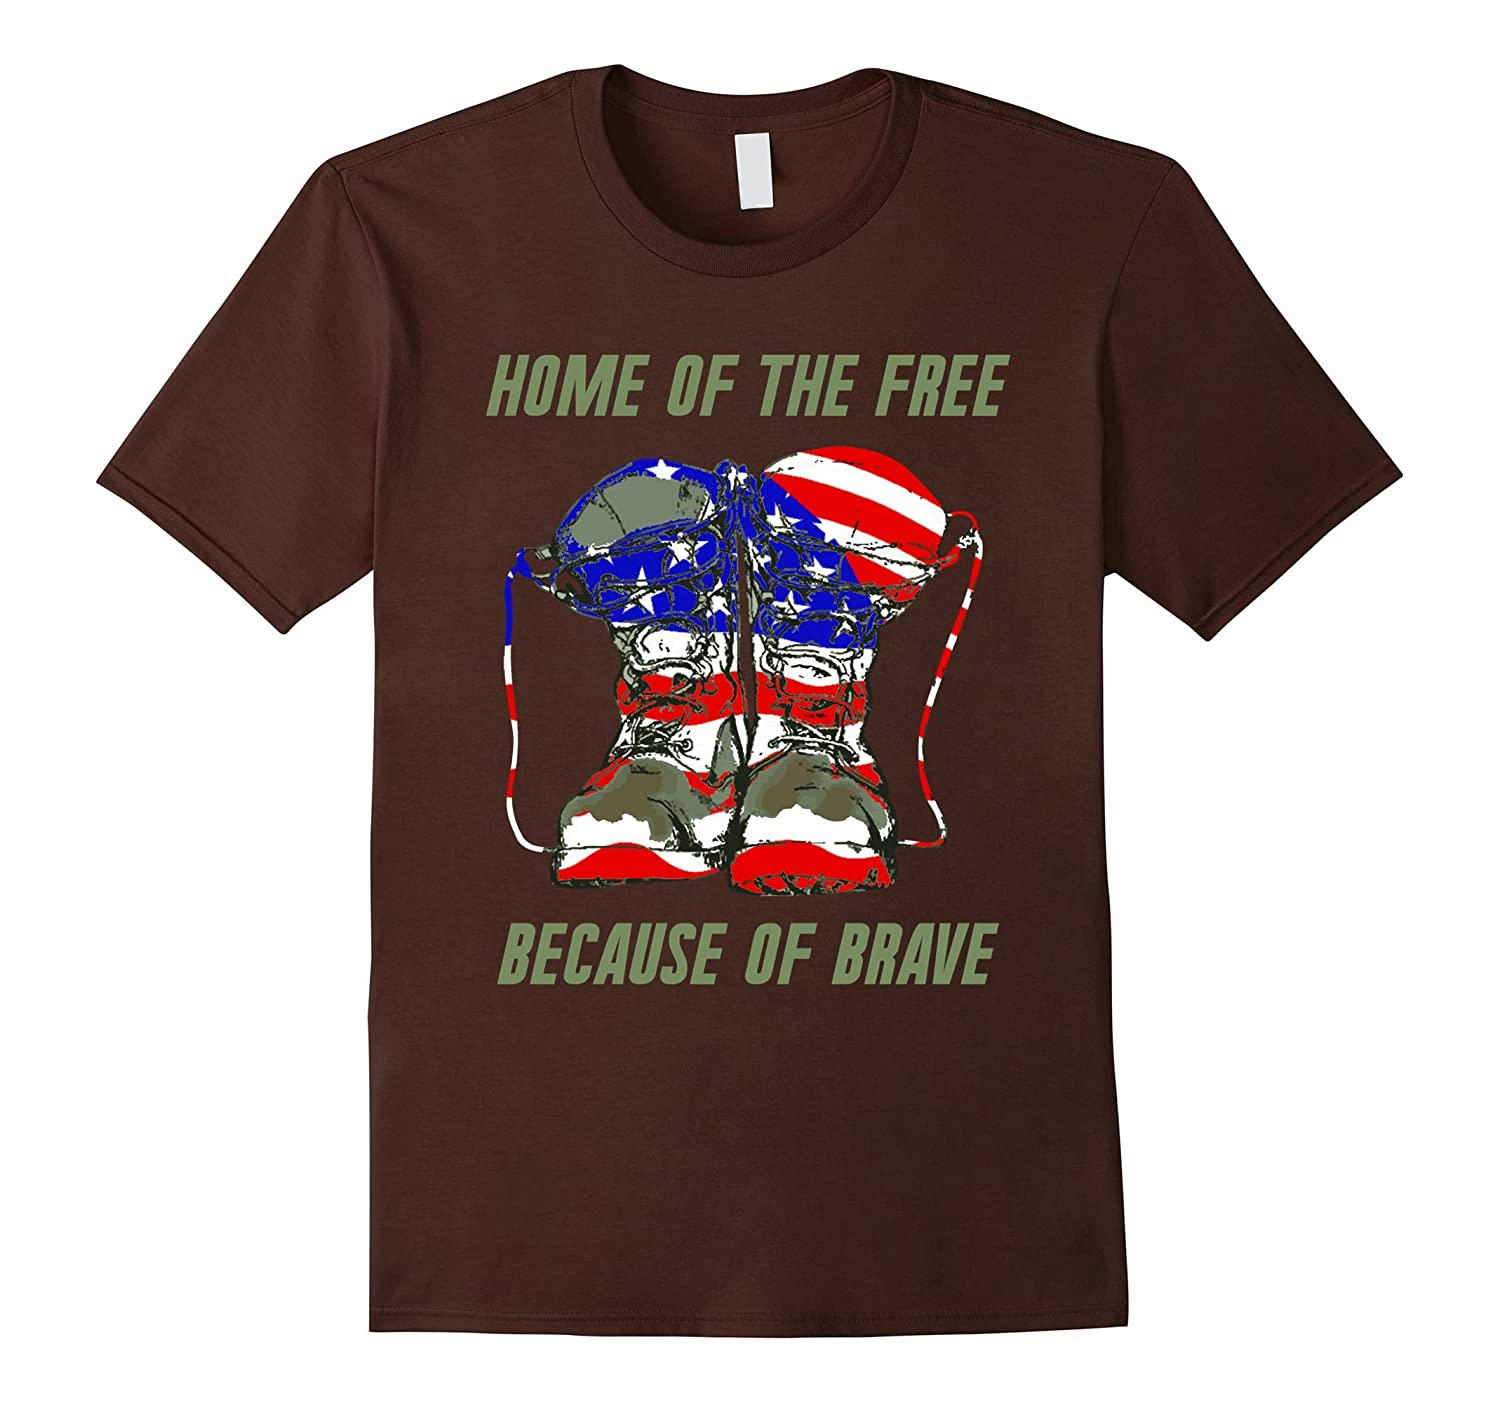 Proud American Home Free Because Of Brave Tshirts Pl Polozatee